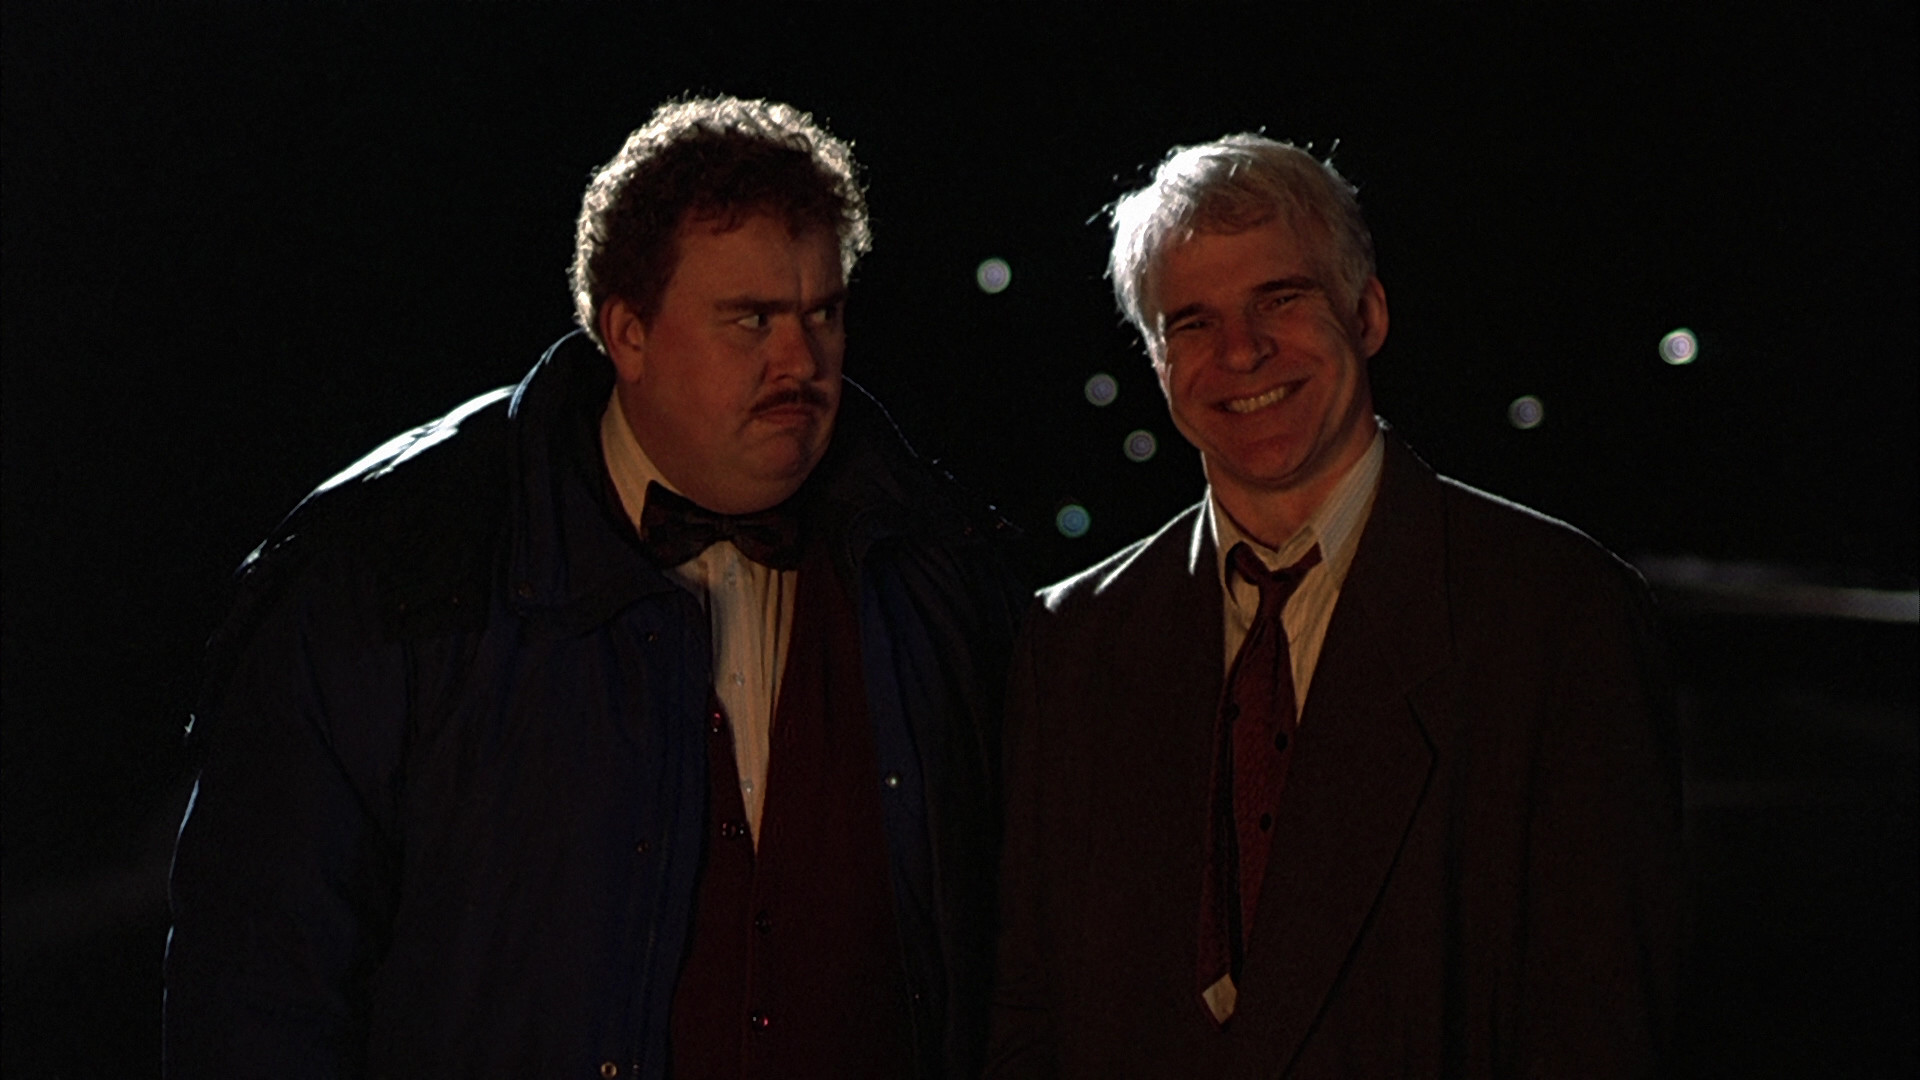 John Candy in Planes, Trains And Automobiles.